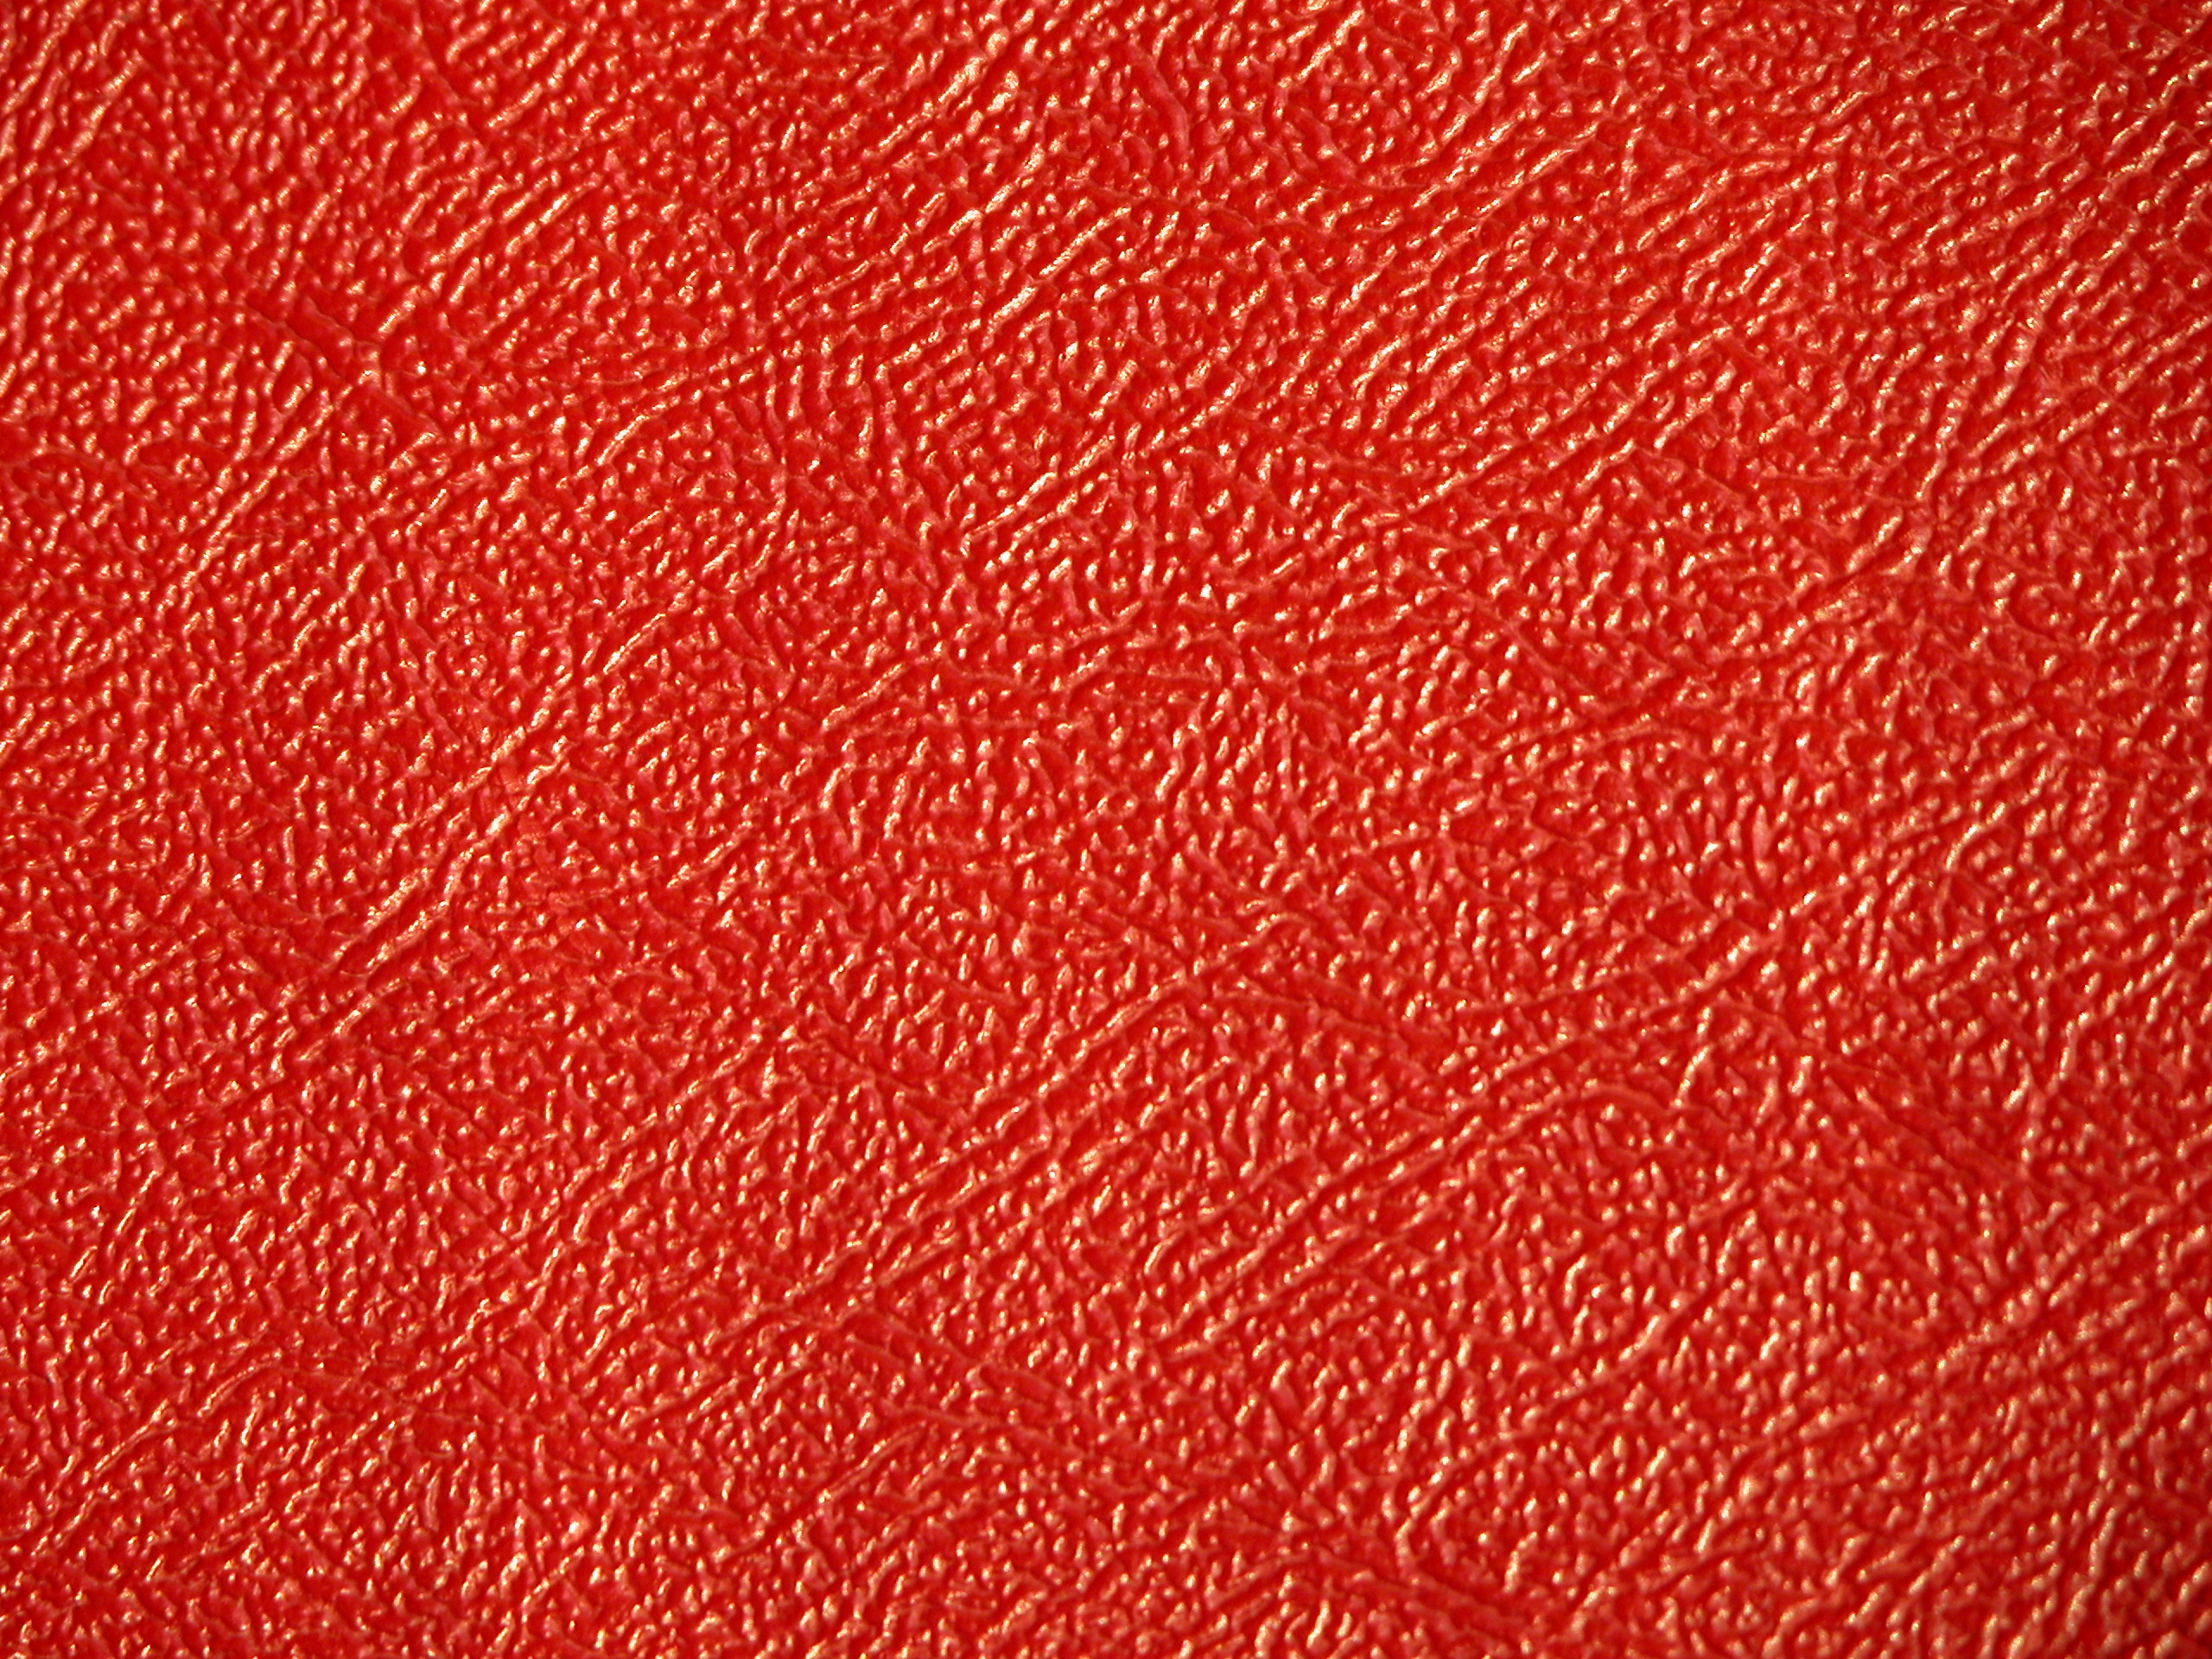 red leather texture, background, leather background, leather background